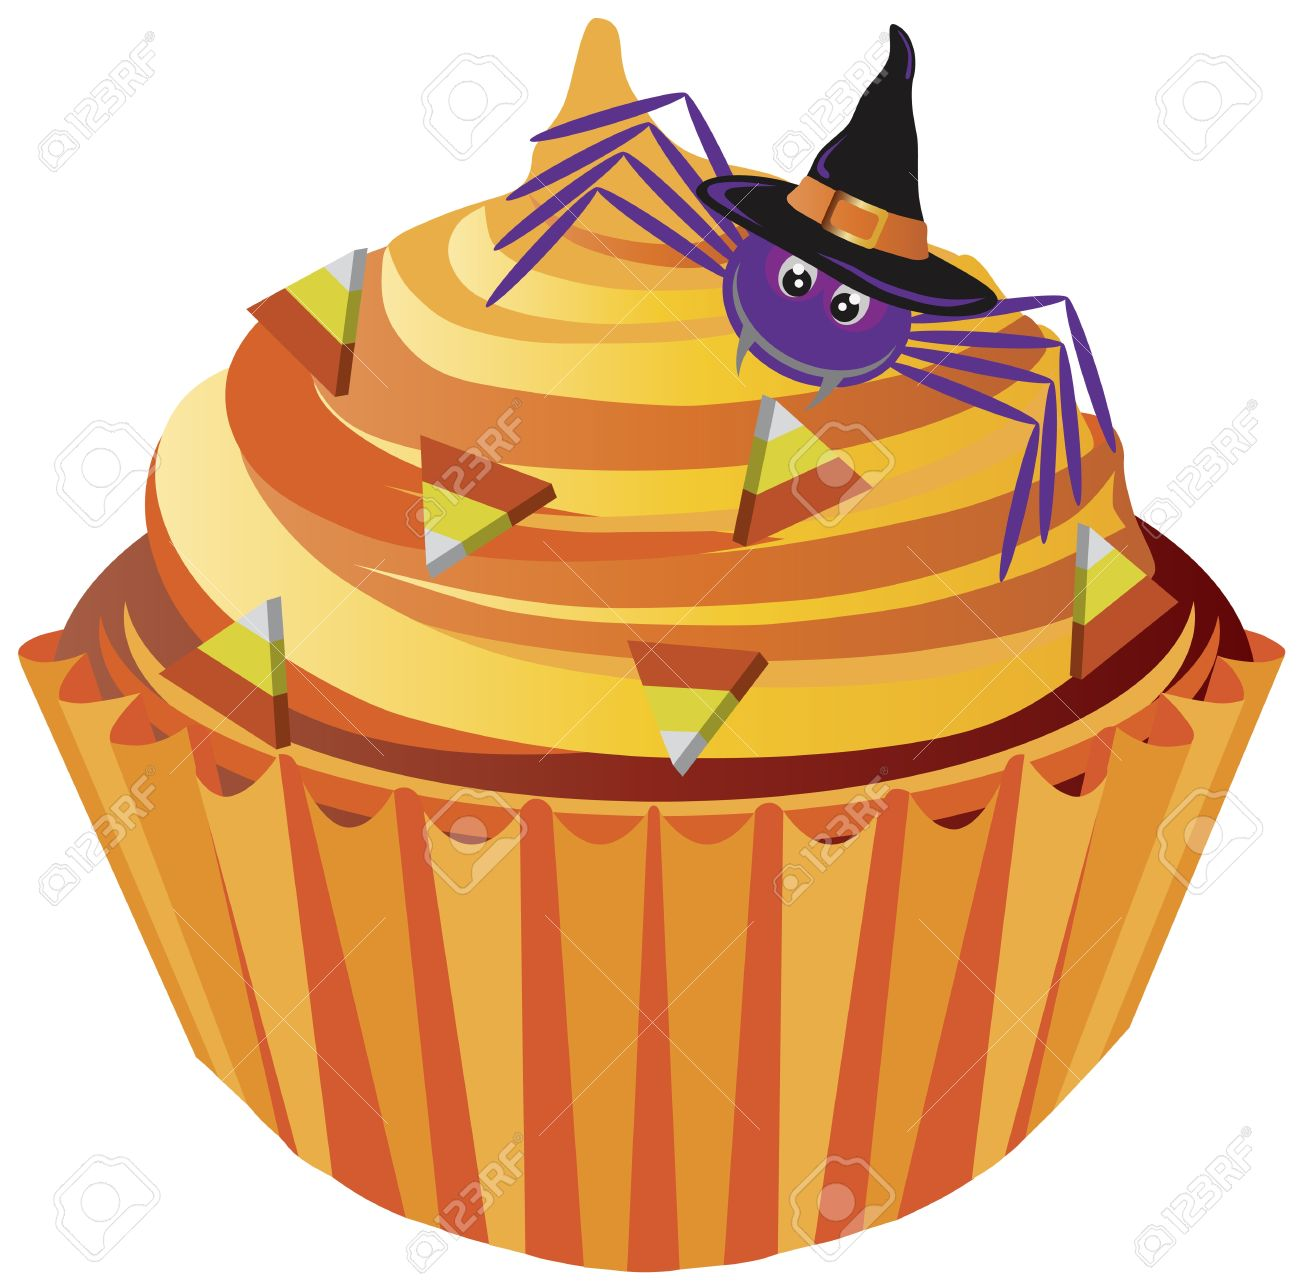 Halloween Cupcake with Spider with Witch Hat and Candy Illustration.